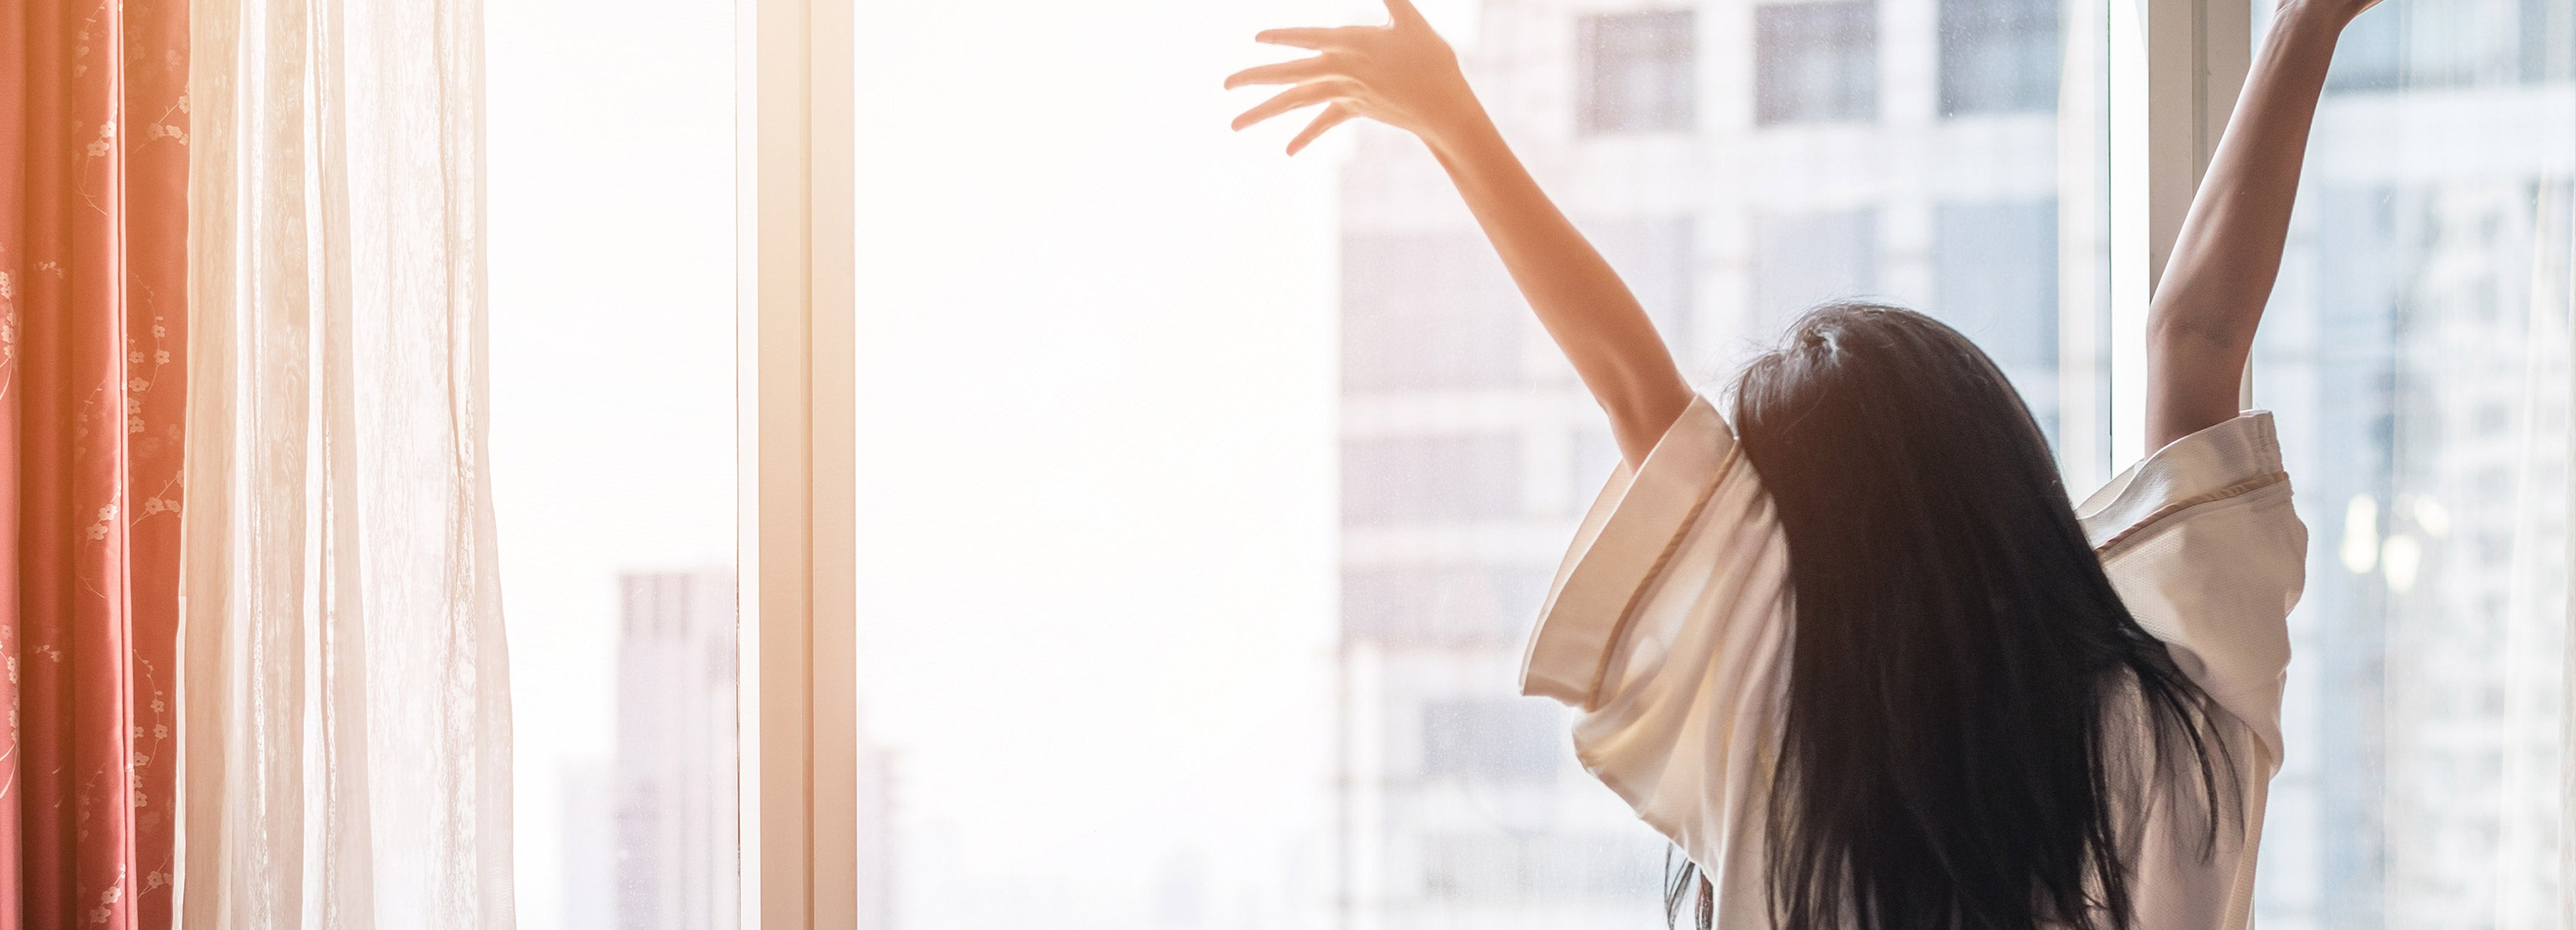 How To Get More Energy In the Mornings Naturally